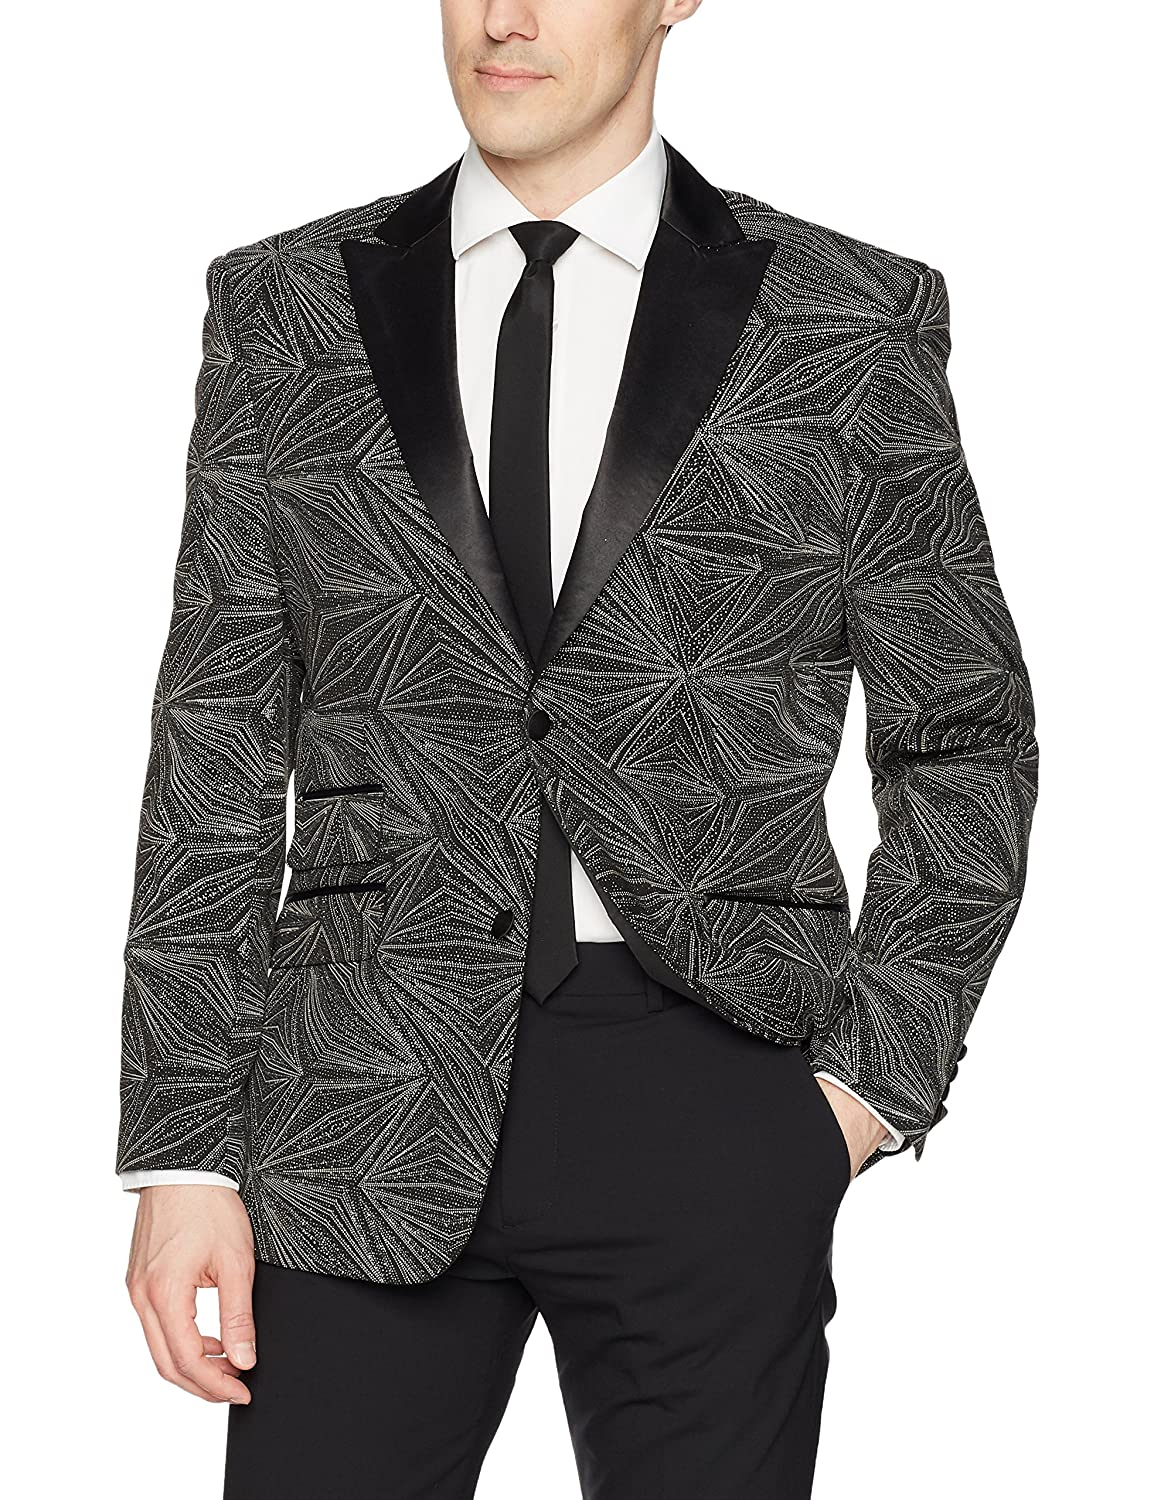 Stacy Adams BLAZER メンズ B0761742MF X-Small|ブラック ブラック X-Small